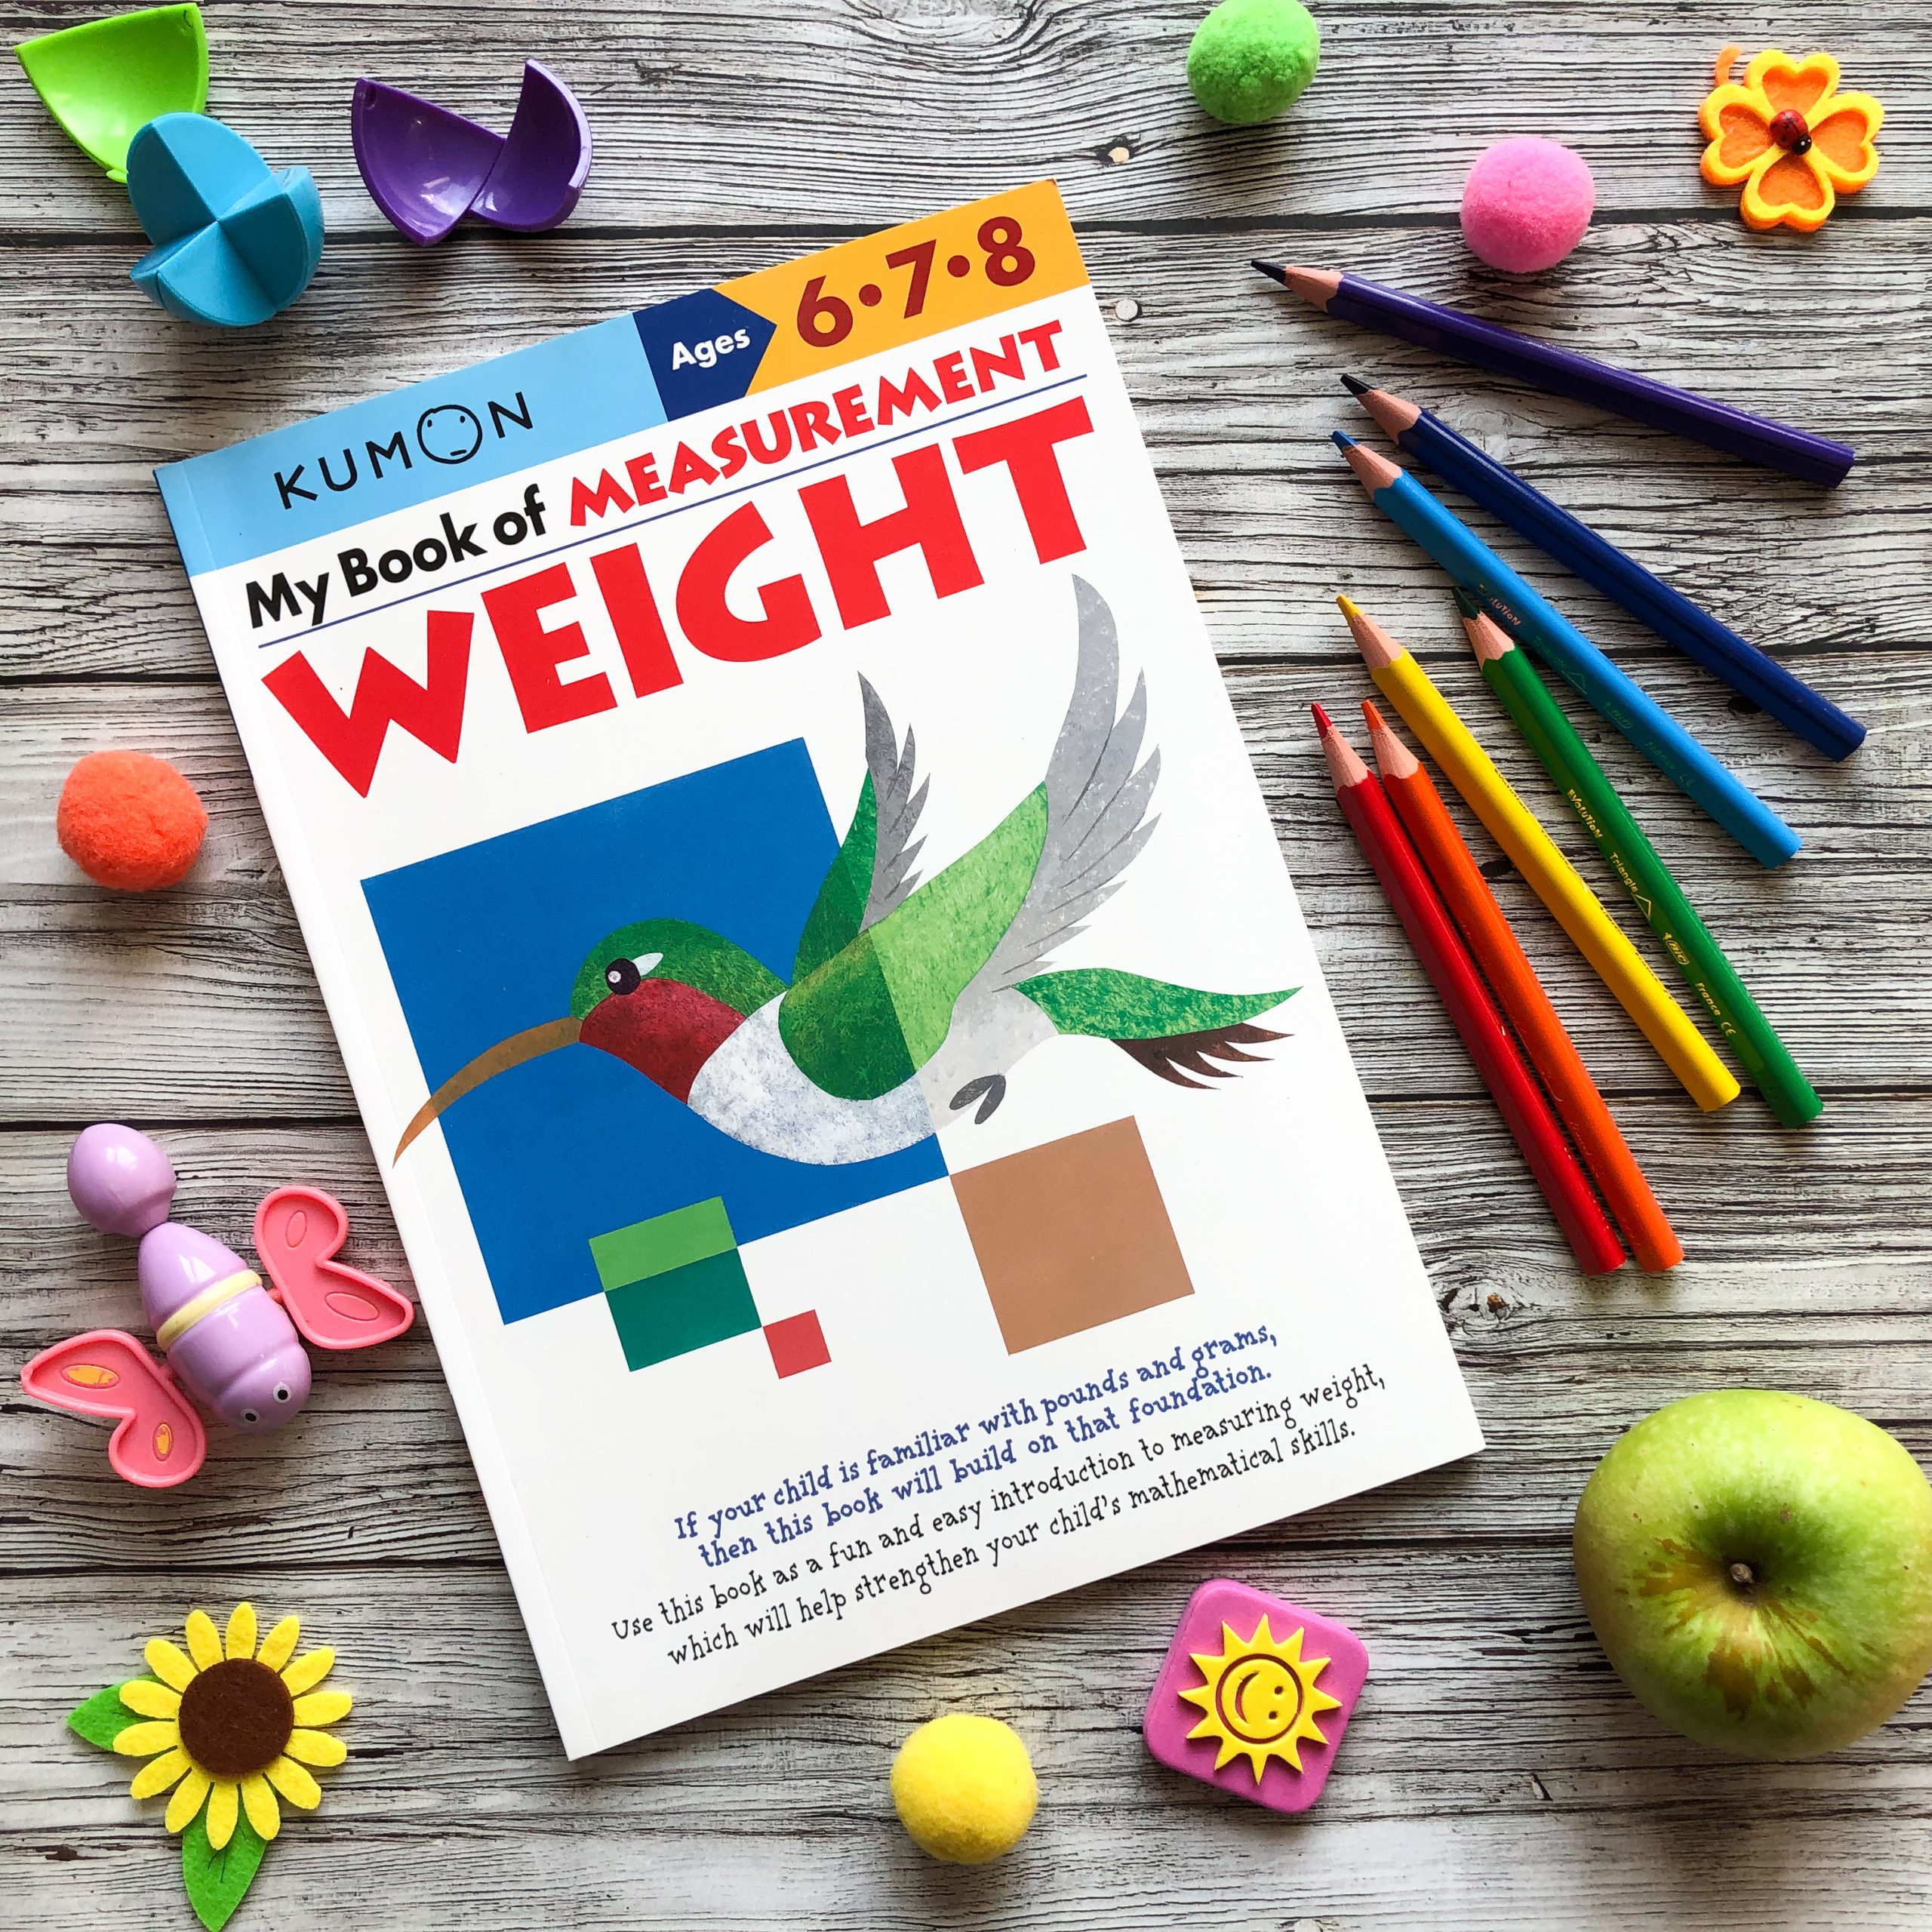 My Book of Measurement: Weight, 6-8 1